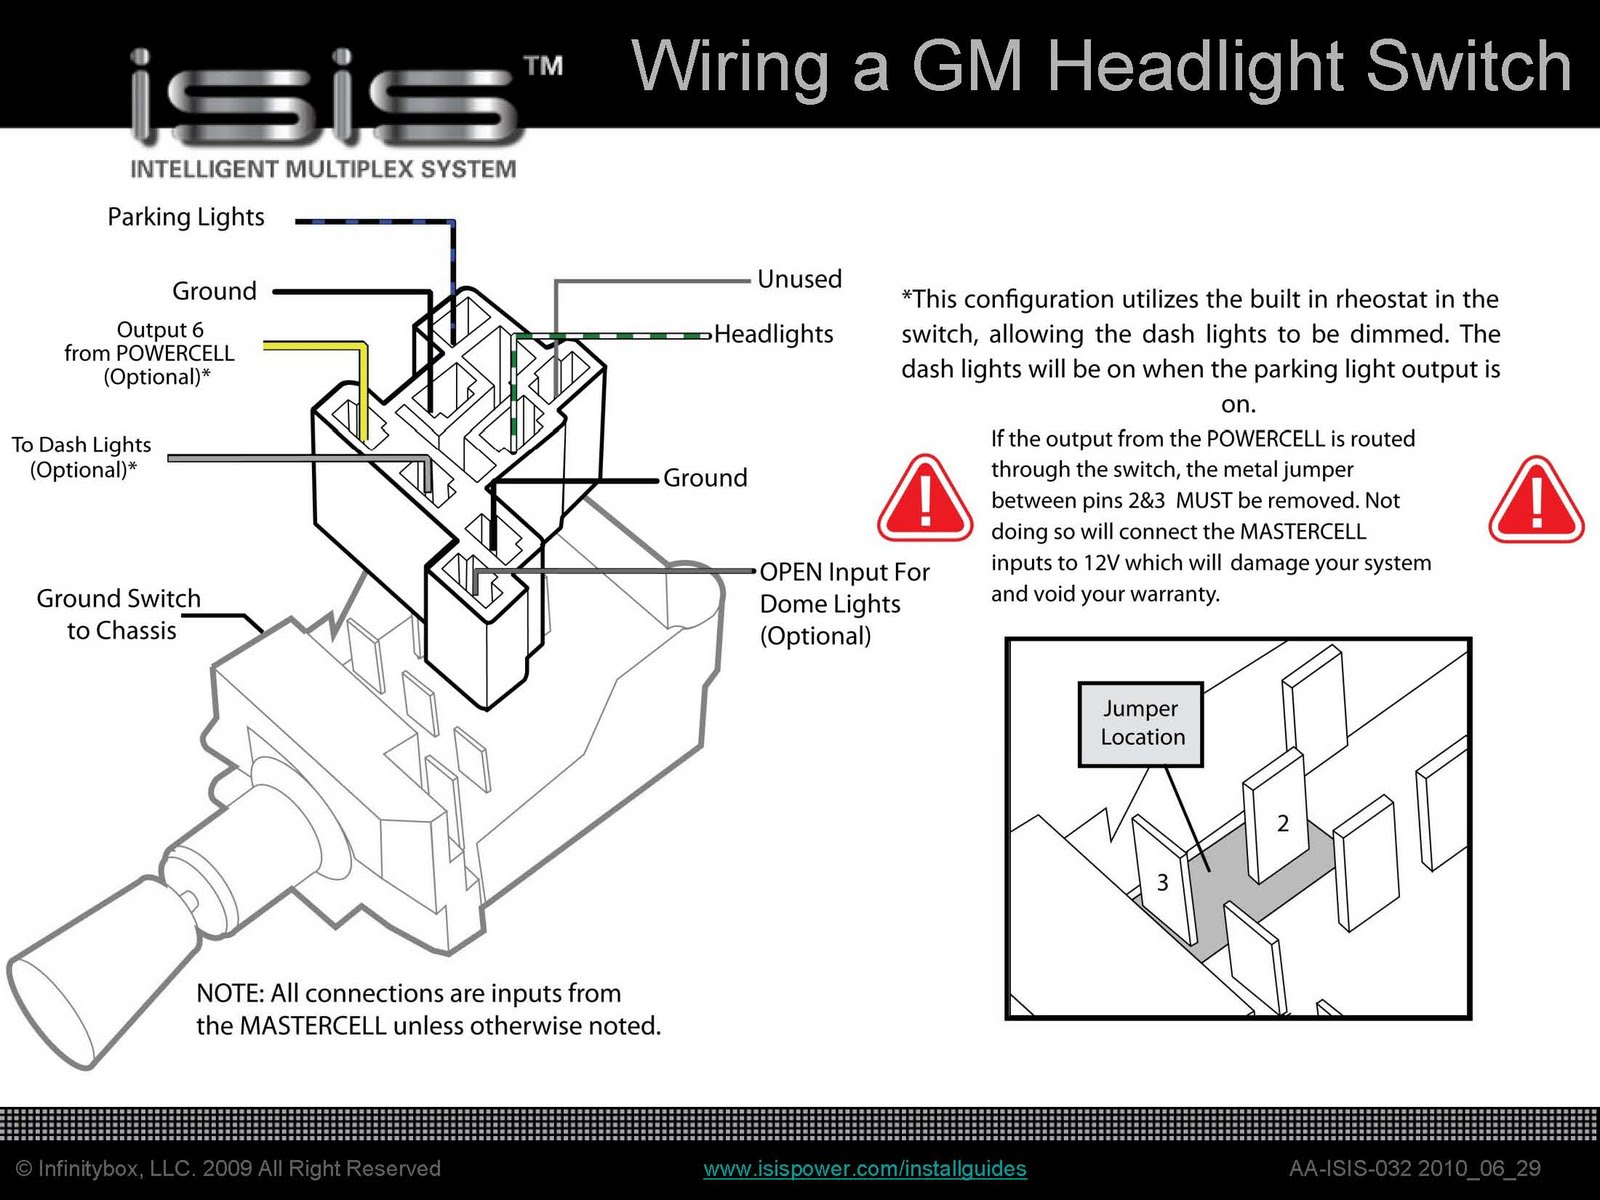 wiring diagram for headlight switch the wiring diagram oldsmobile headlight switch wiring diagram oldsmobile wiring diagram